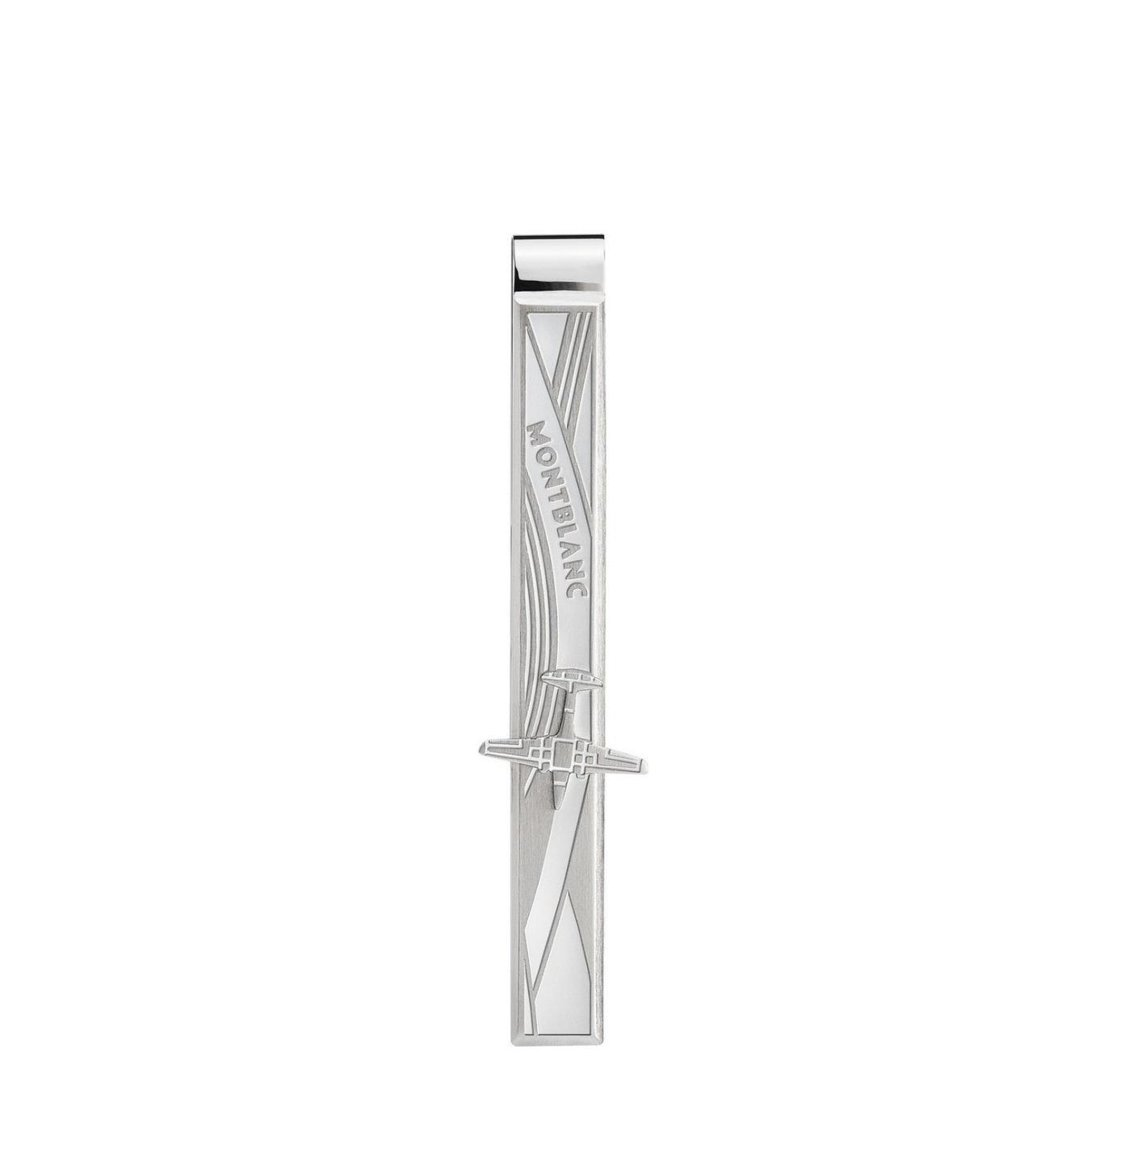 Montblanc Le Petit Prince Tie Bar Mat brushed polished Silver Stainless steel